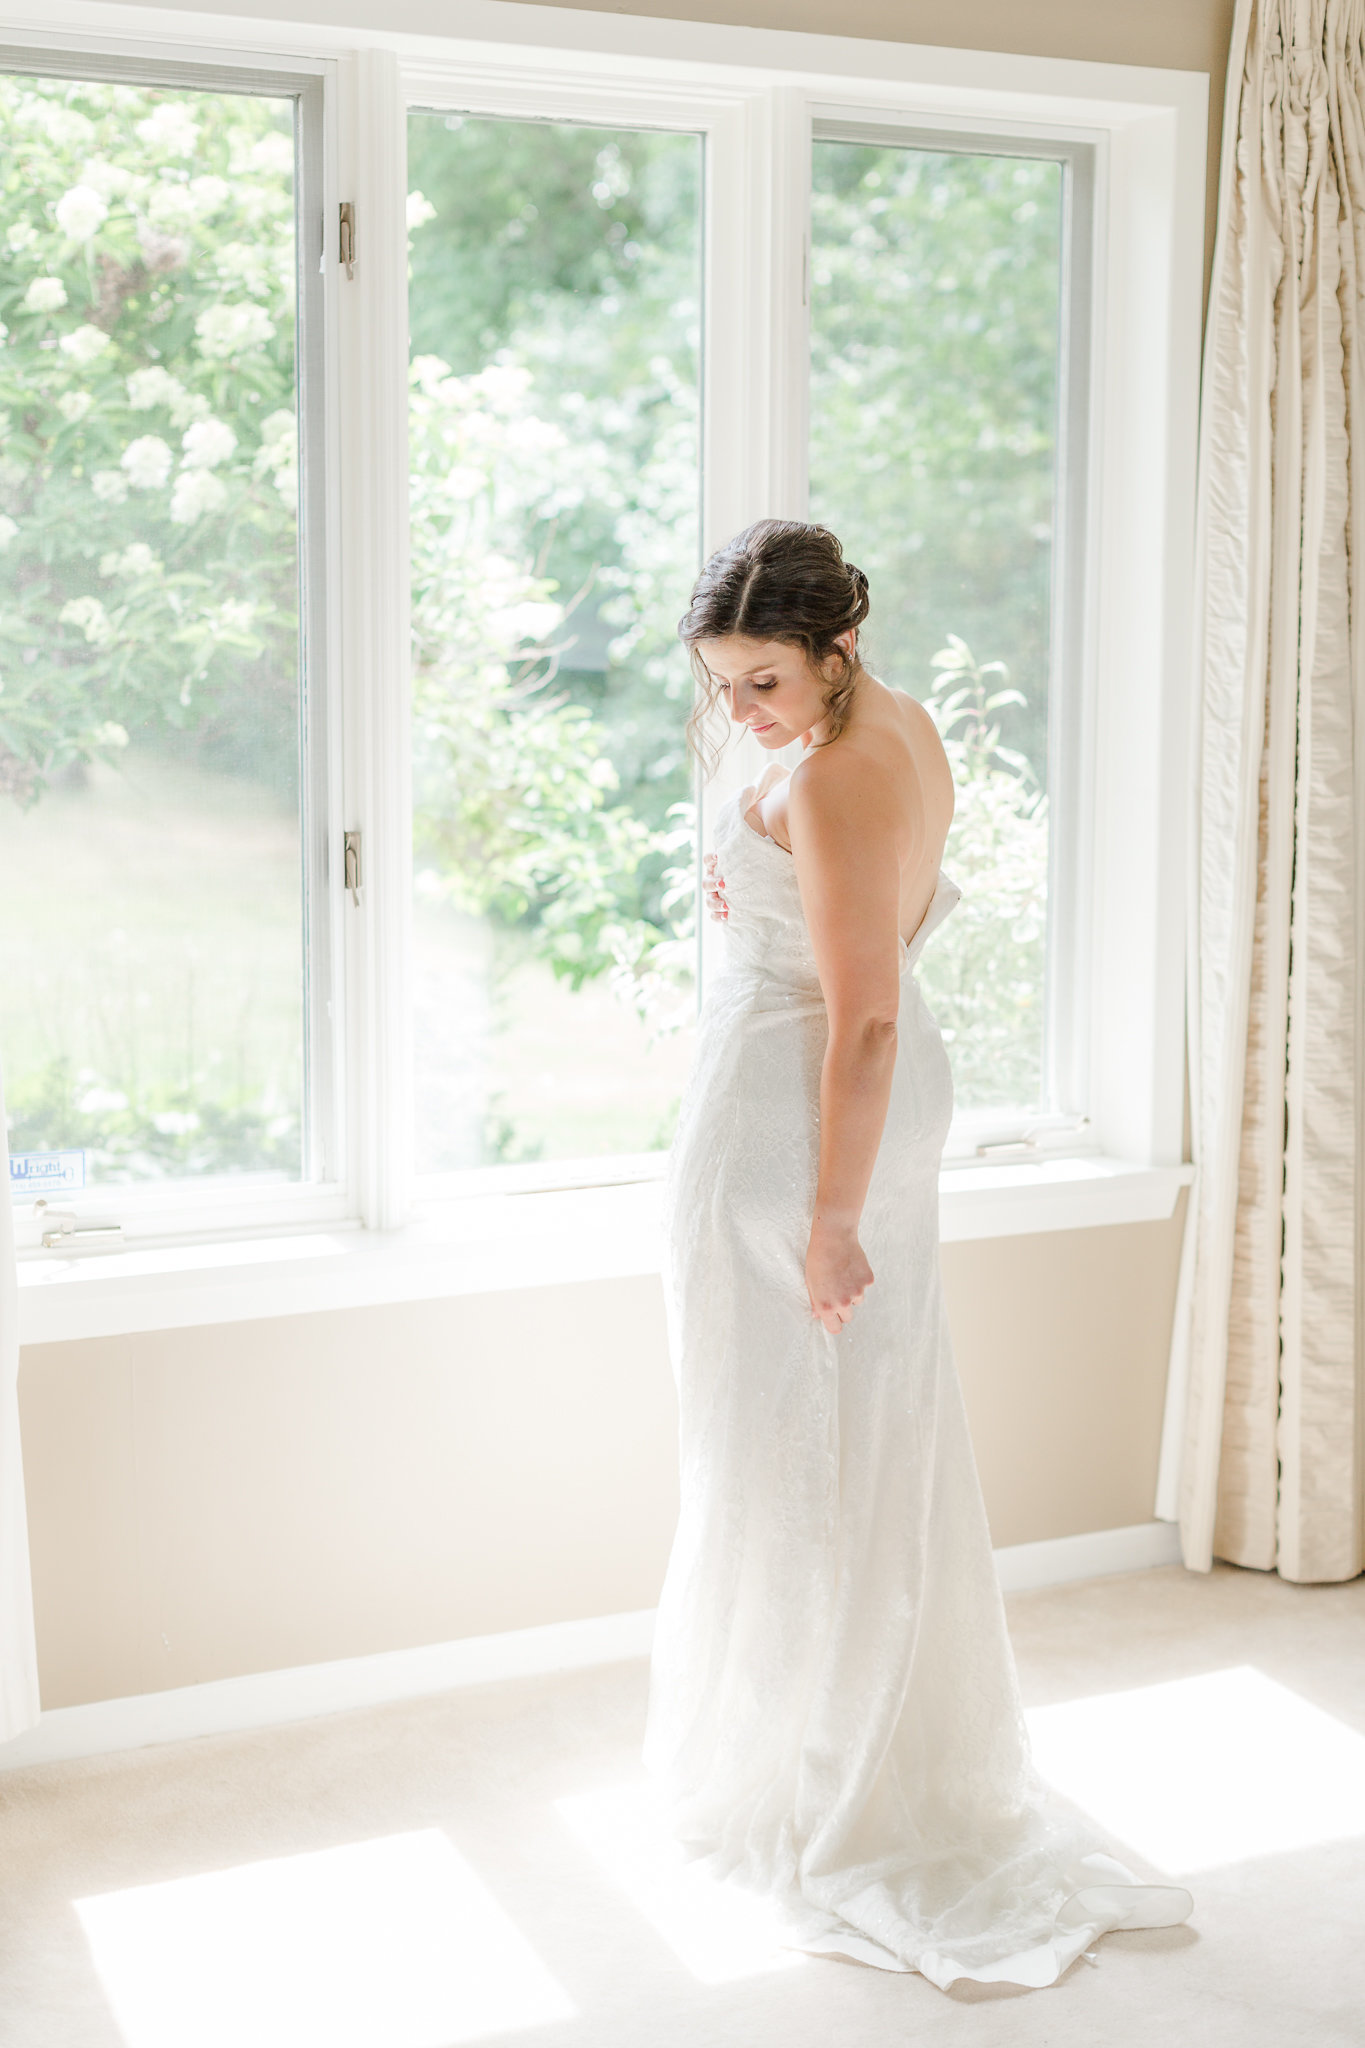 photographe-mariage-verger-de-hudson-lisa-renault-photographie-montreal-wedding-photographer-17